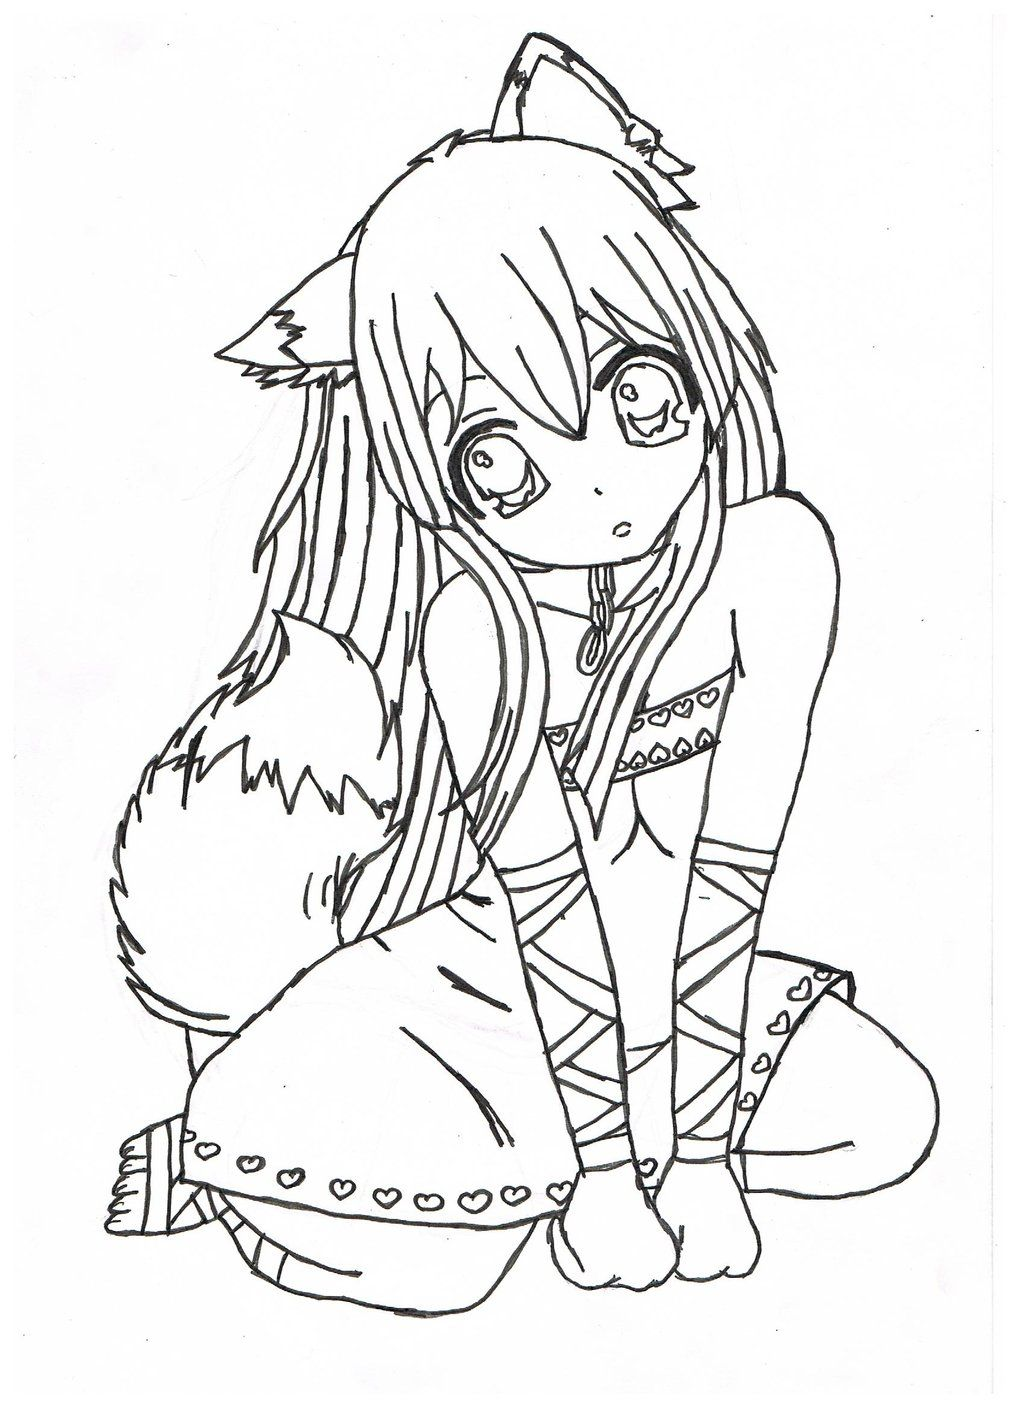 anime coloring pages to print - High Quality Coloring Pages